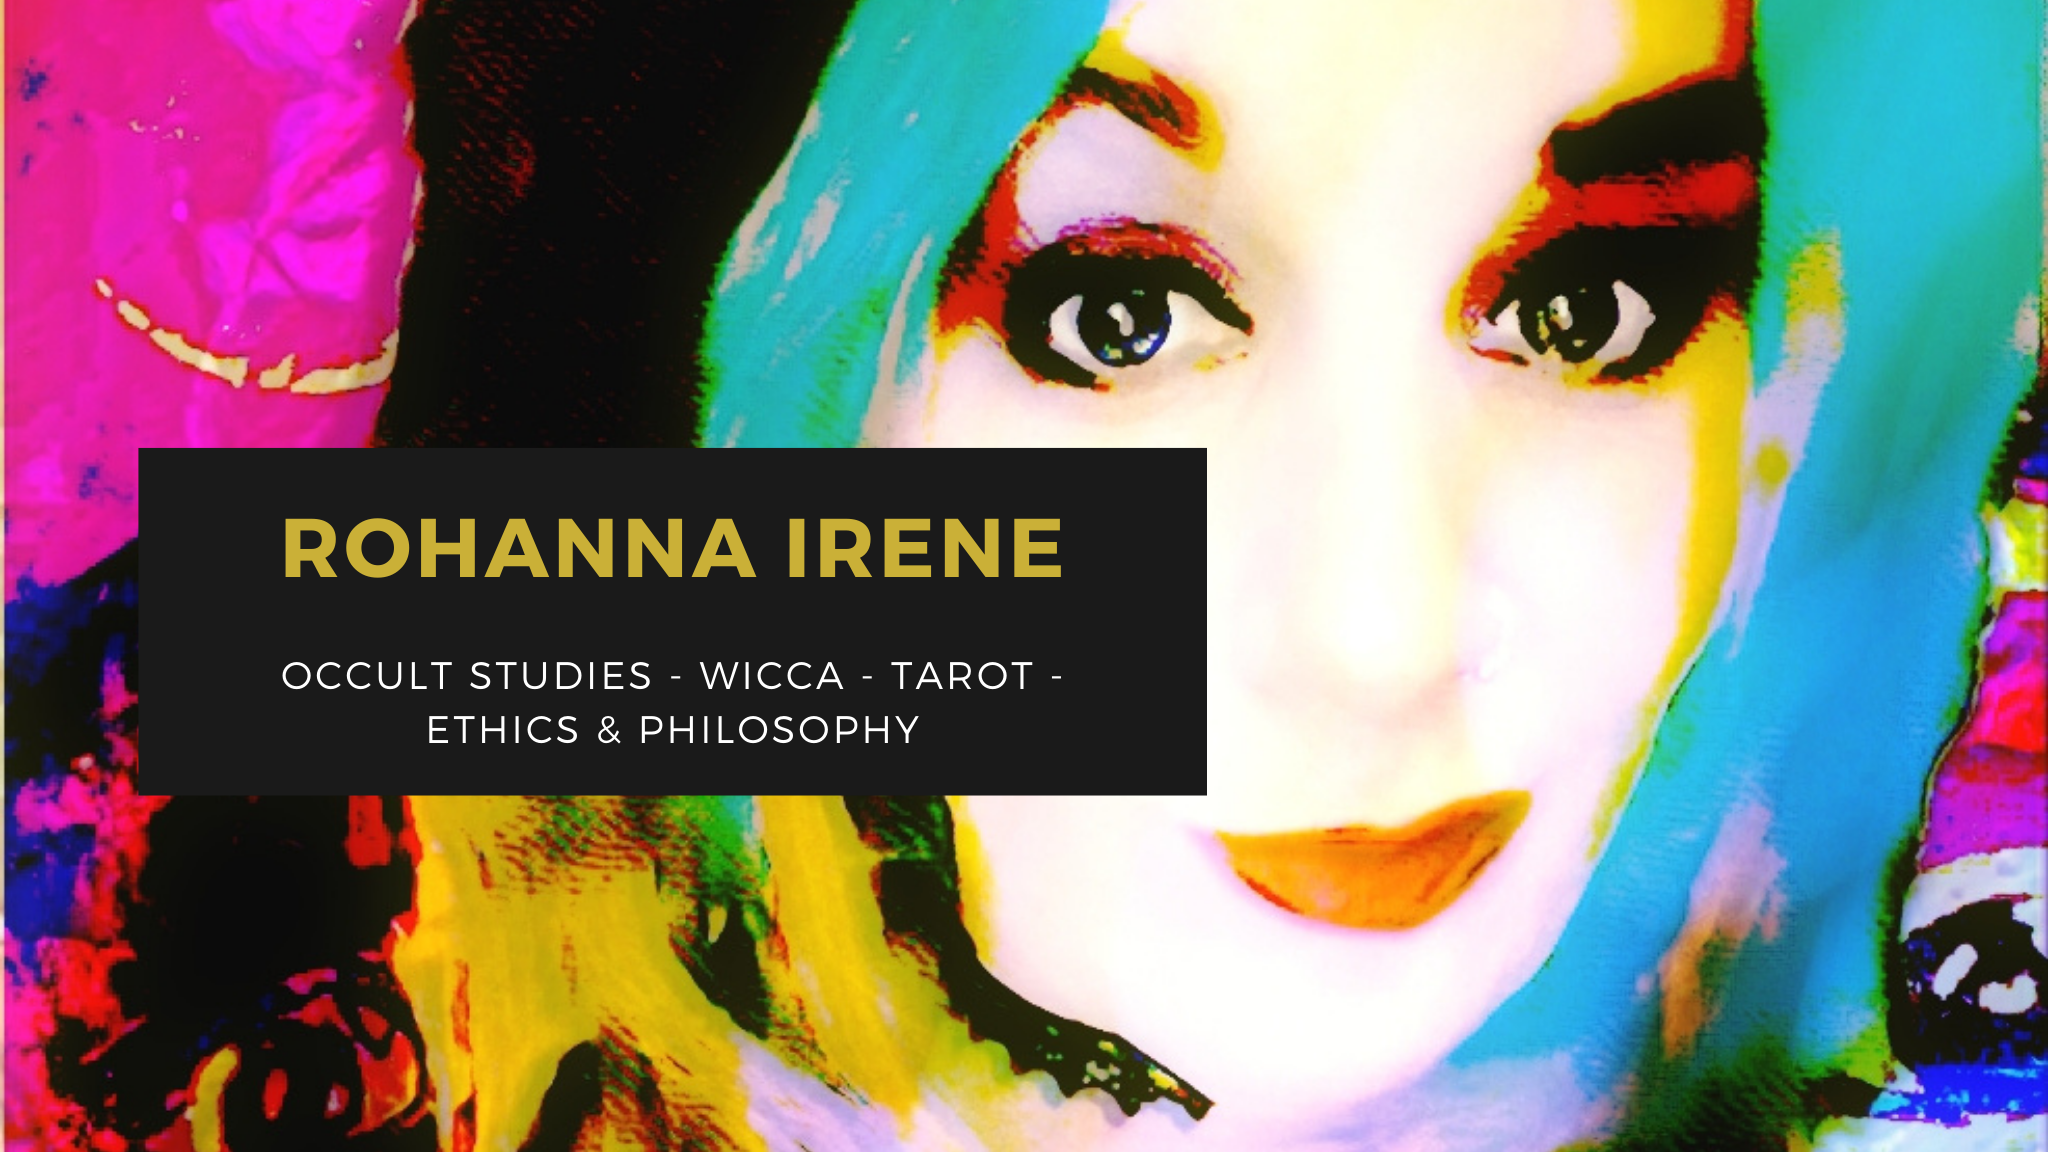 This image shows an artistic rendition of the hostess of the mage against the machine podcast. Across the box it says Rohanna Irene, and then occult studies, wicca, tarot, ethics & philosophy. Behind this is a brightly colored picture that has been digitally altered. It is vibrant with hot pink, blonde, teal, black, white, blue and such colors. The way it is colored, Rohanna looks like she has green and black hair and the tips may be blonde. She has a cute smile and shining eyes with a tinge of blue to them.